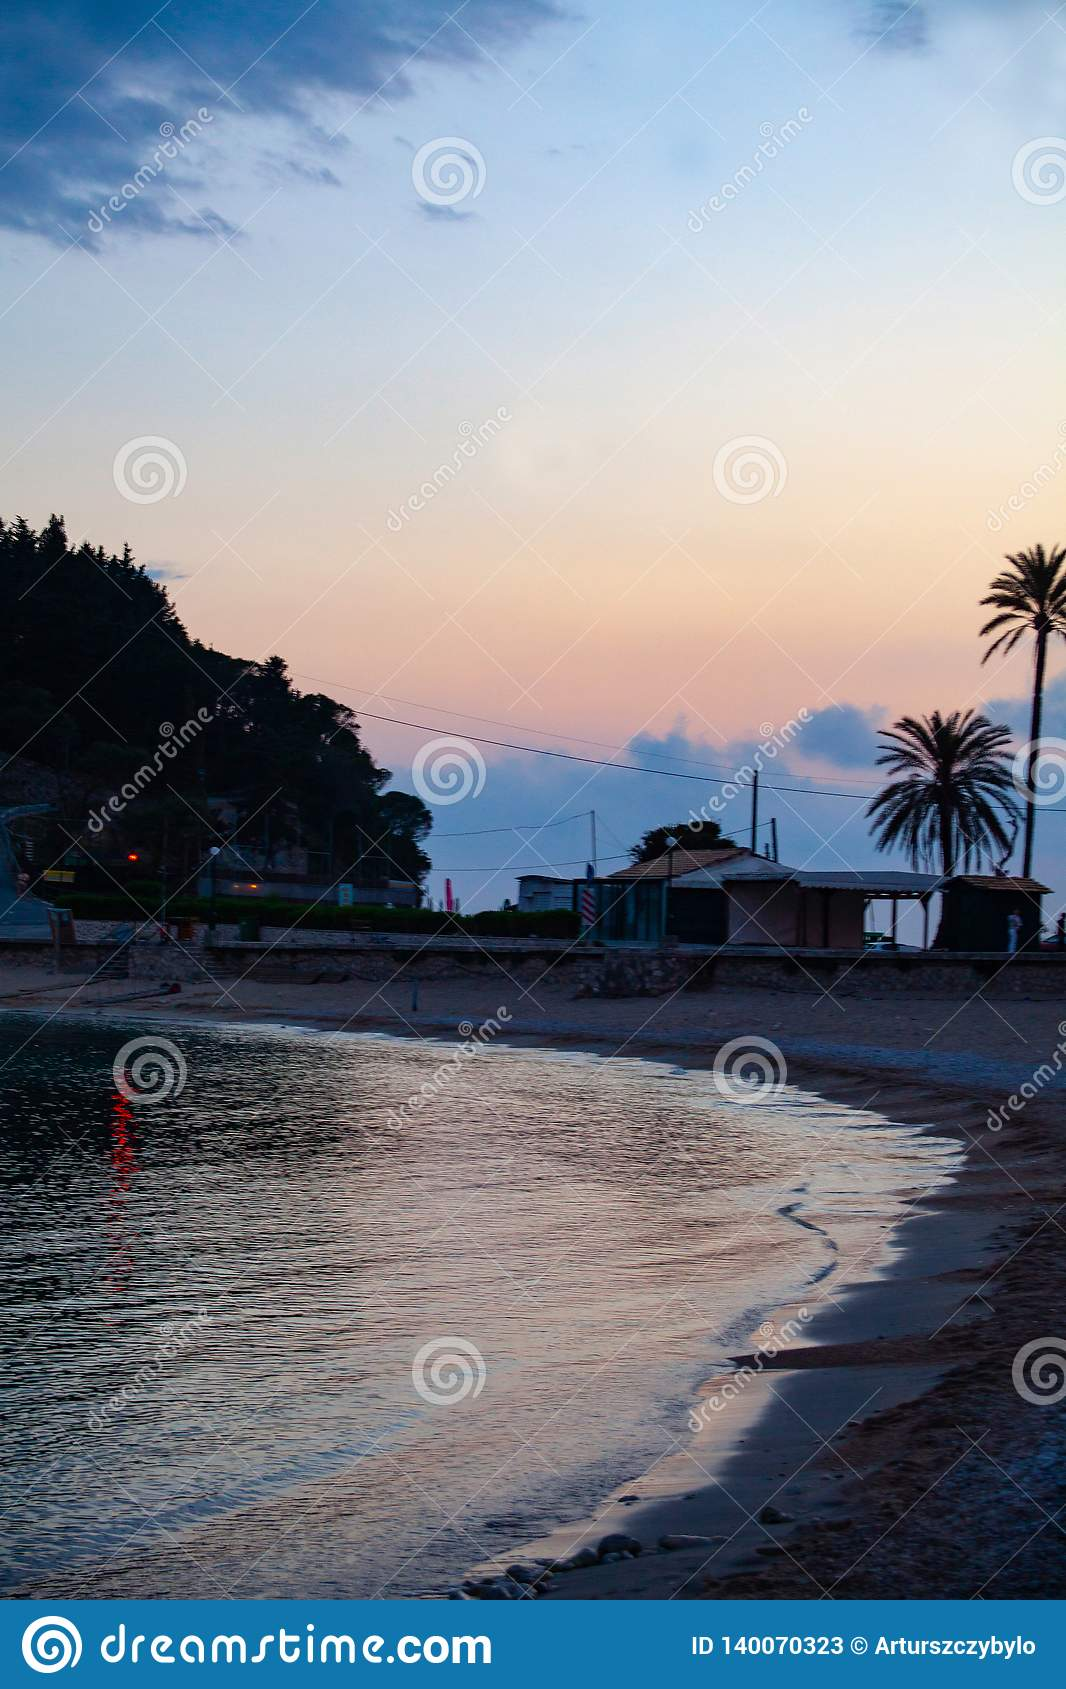 A sandy beach at the sea in the dusk with a blue sky in the background. Calm and peace concept on the holiday.